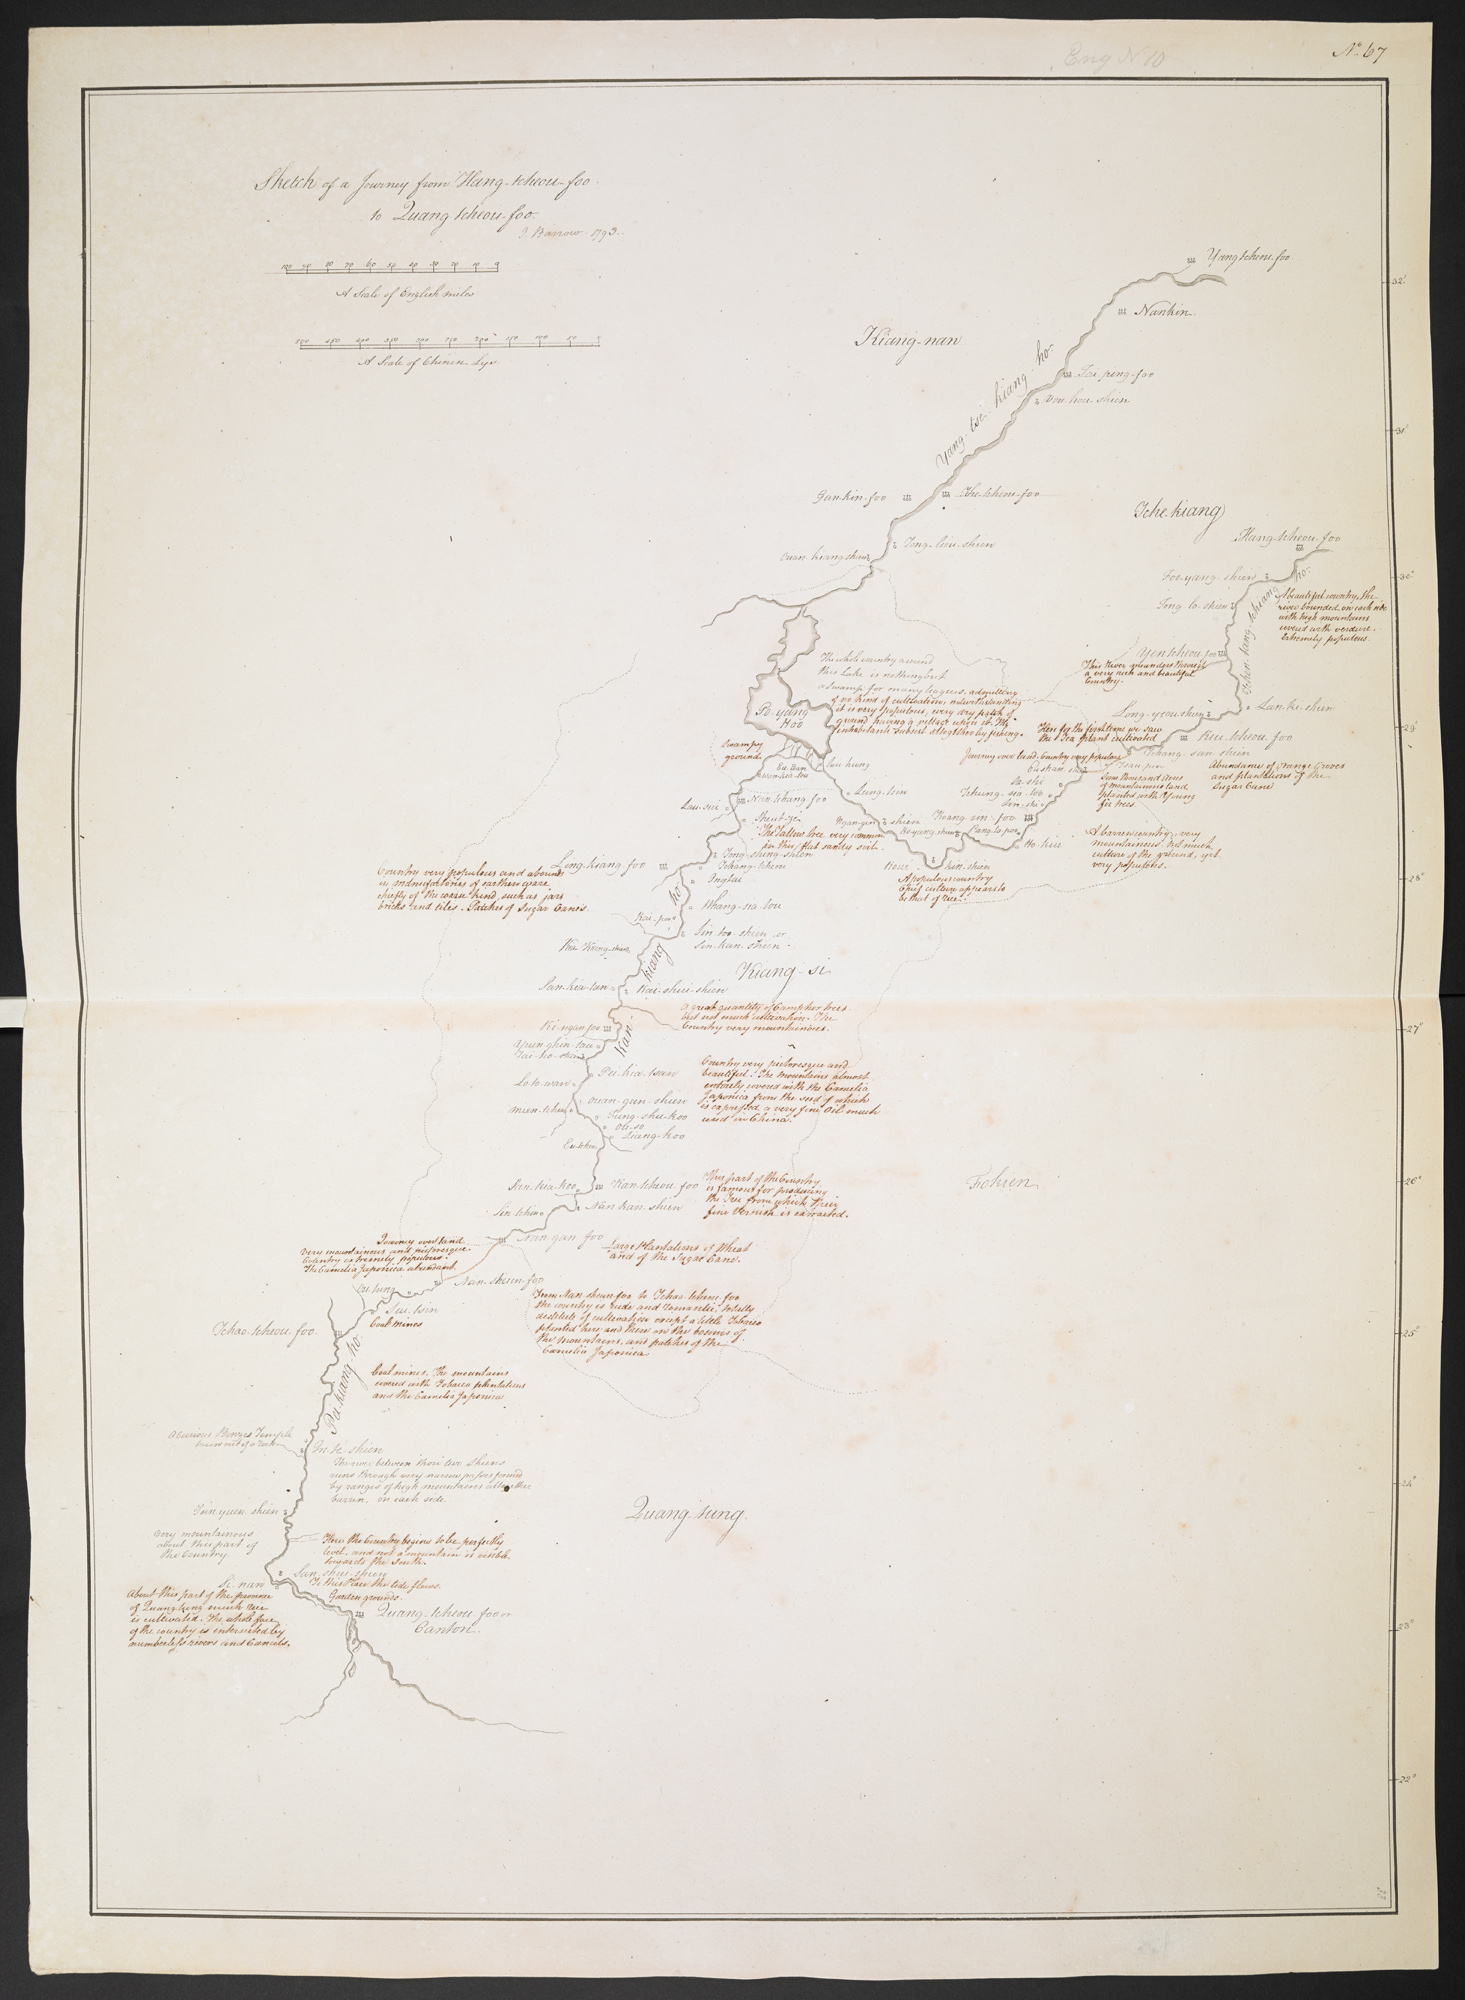 Sketch of a Journey from Hang-tcheou-foo to Quang-tcheou-foo.